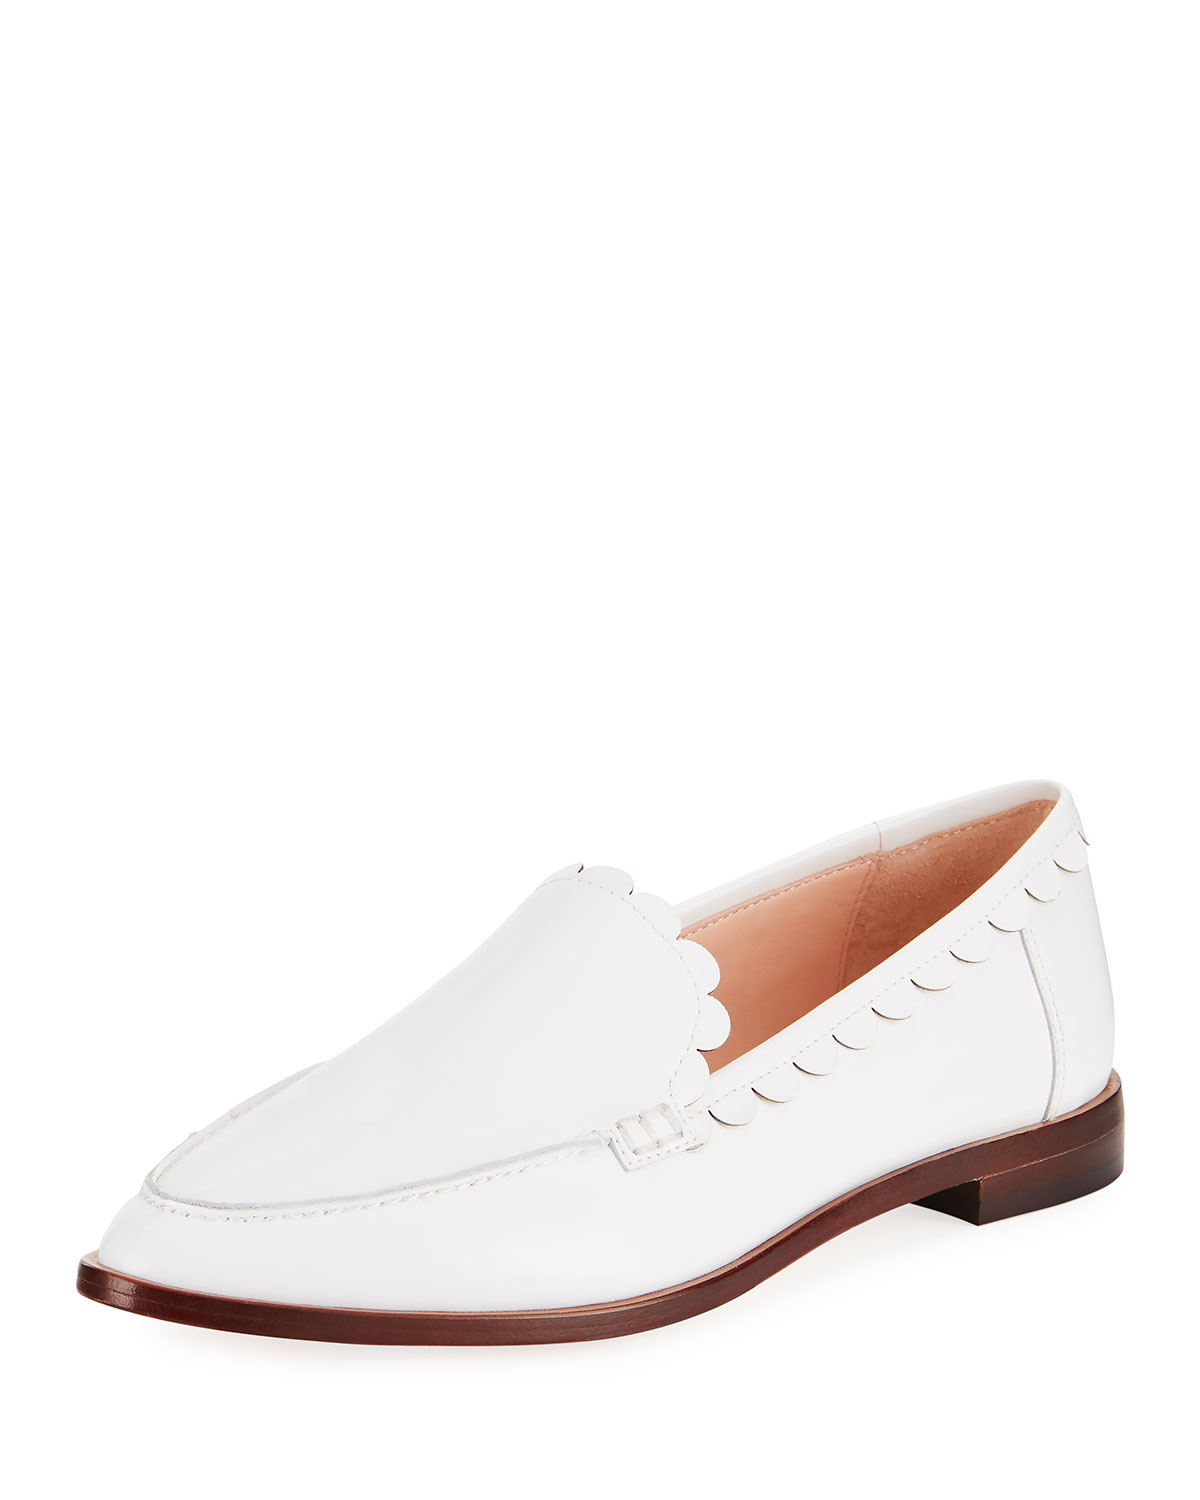 8922f952bb55 kate spade new york cape scallop-trim leather loafer